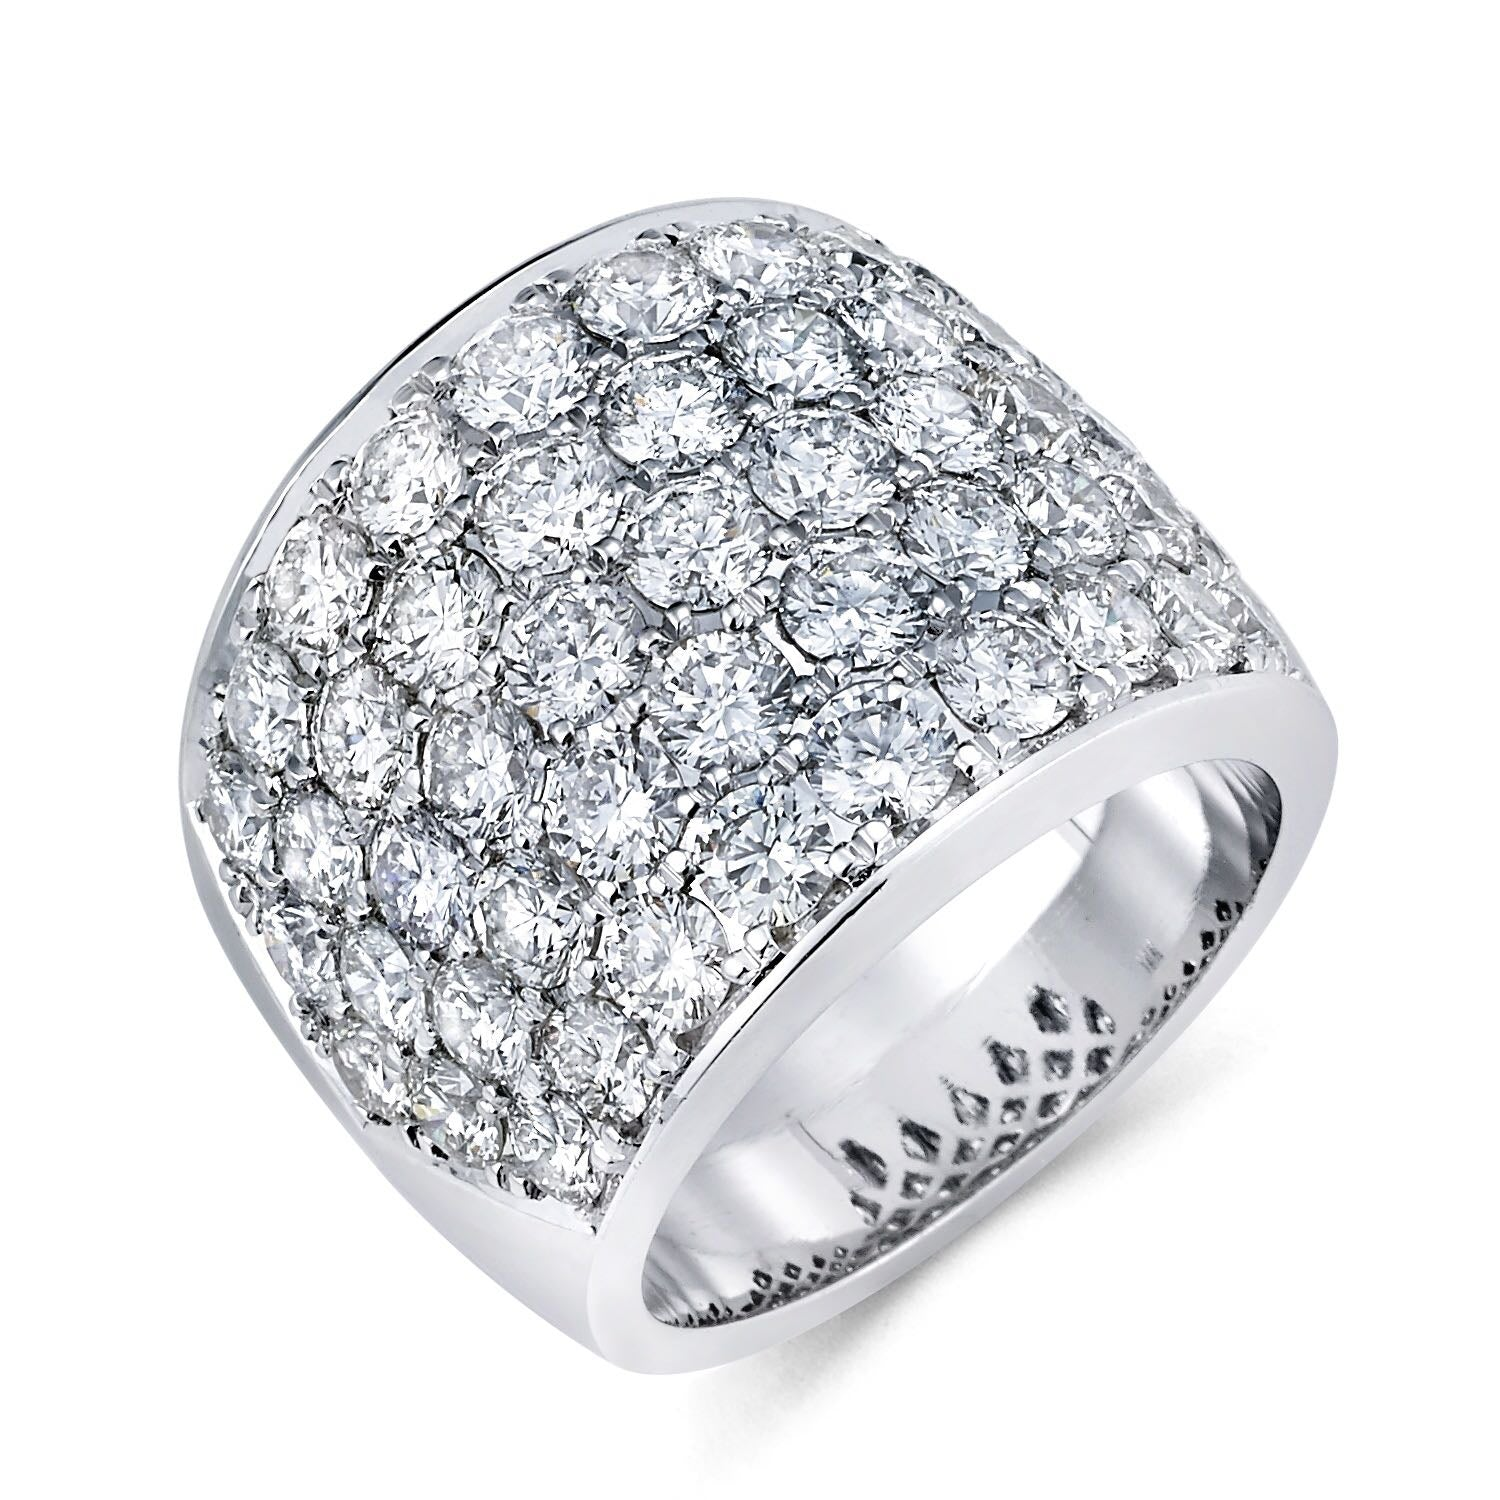 wedding the should how big ring diamonds topic be a stone diamond on